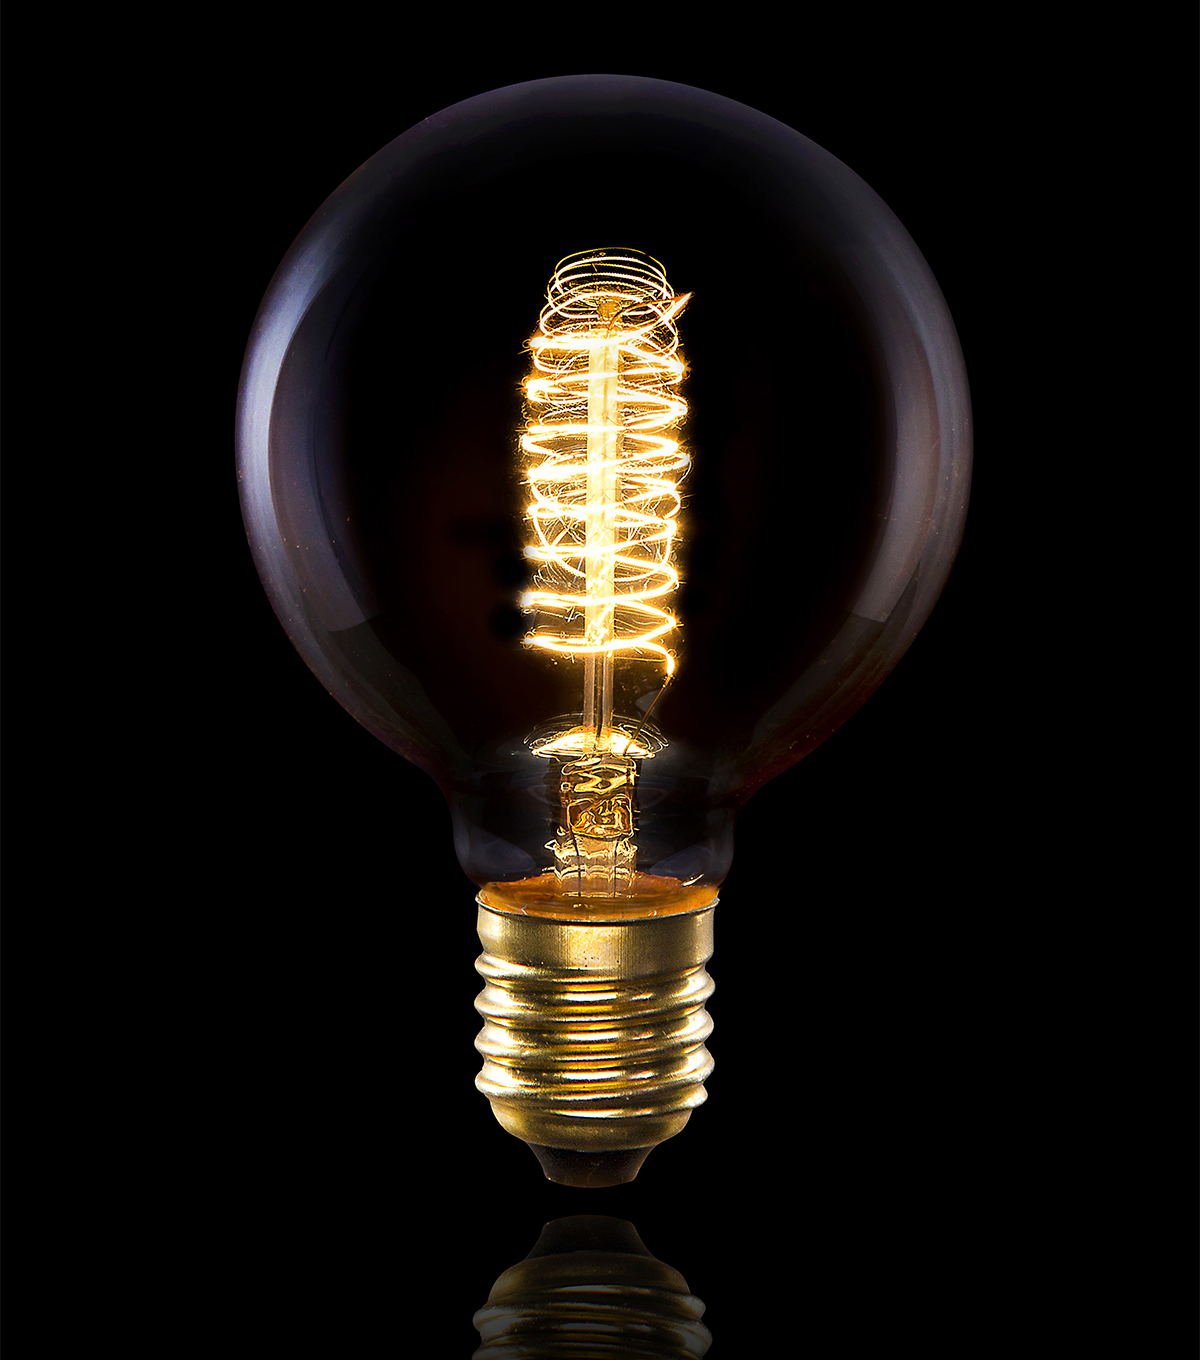 Hudson 43 Edison Bulb Globe with Double Swirl Filament